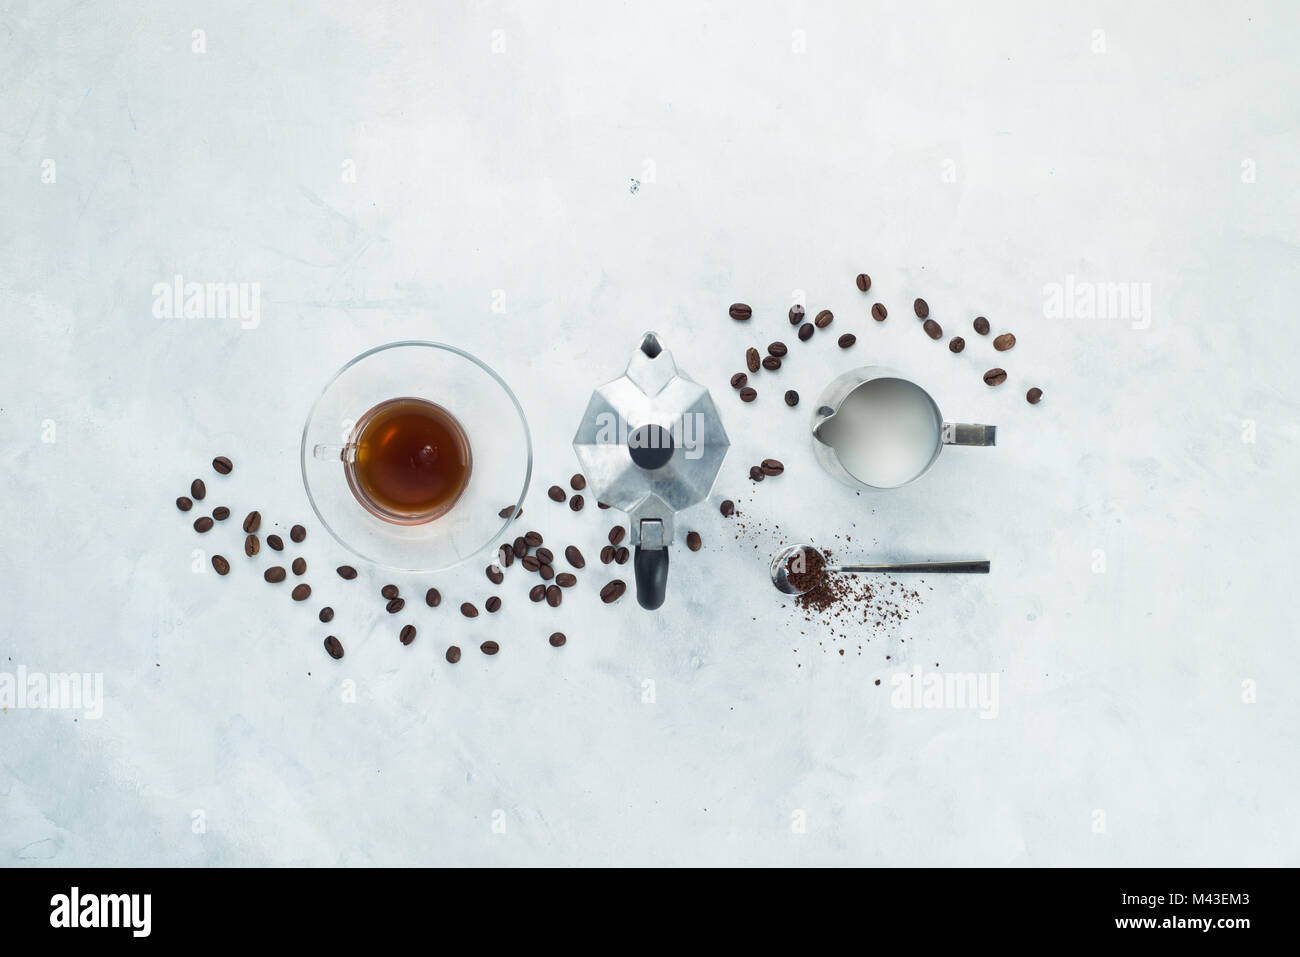 Header with coffee maker minimalist flat lay with coffee beans, milk, ground coffee and geyser coffee maker. Alternative - Stock Image